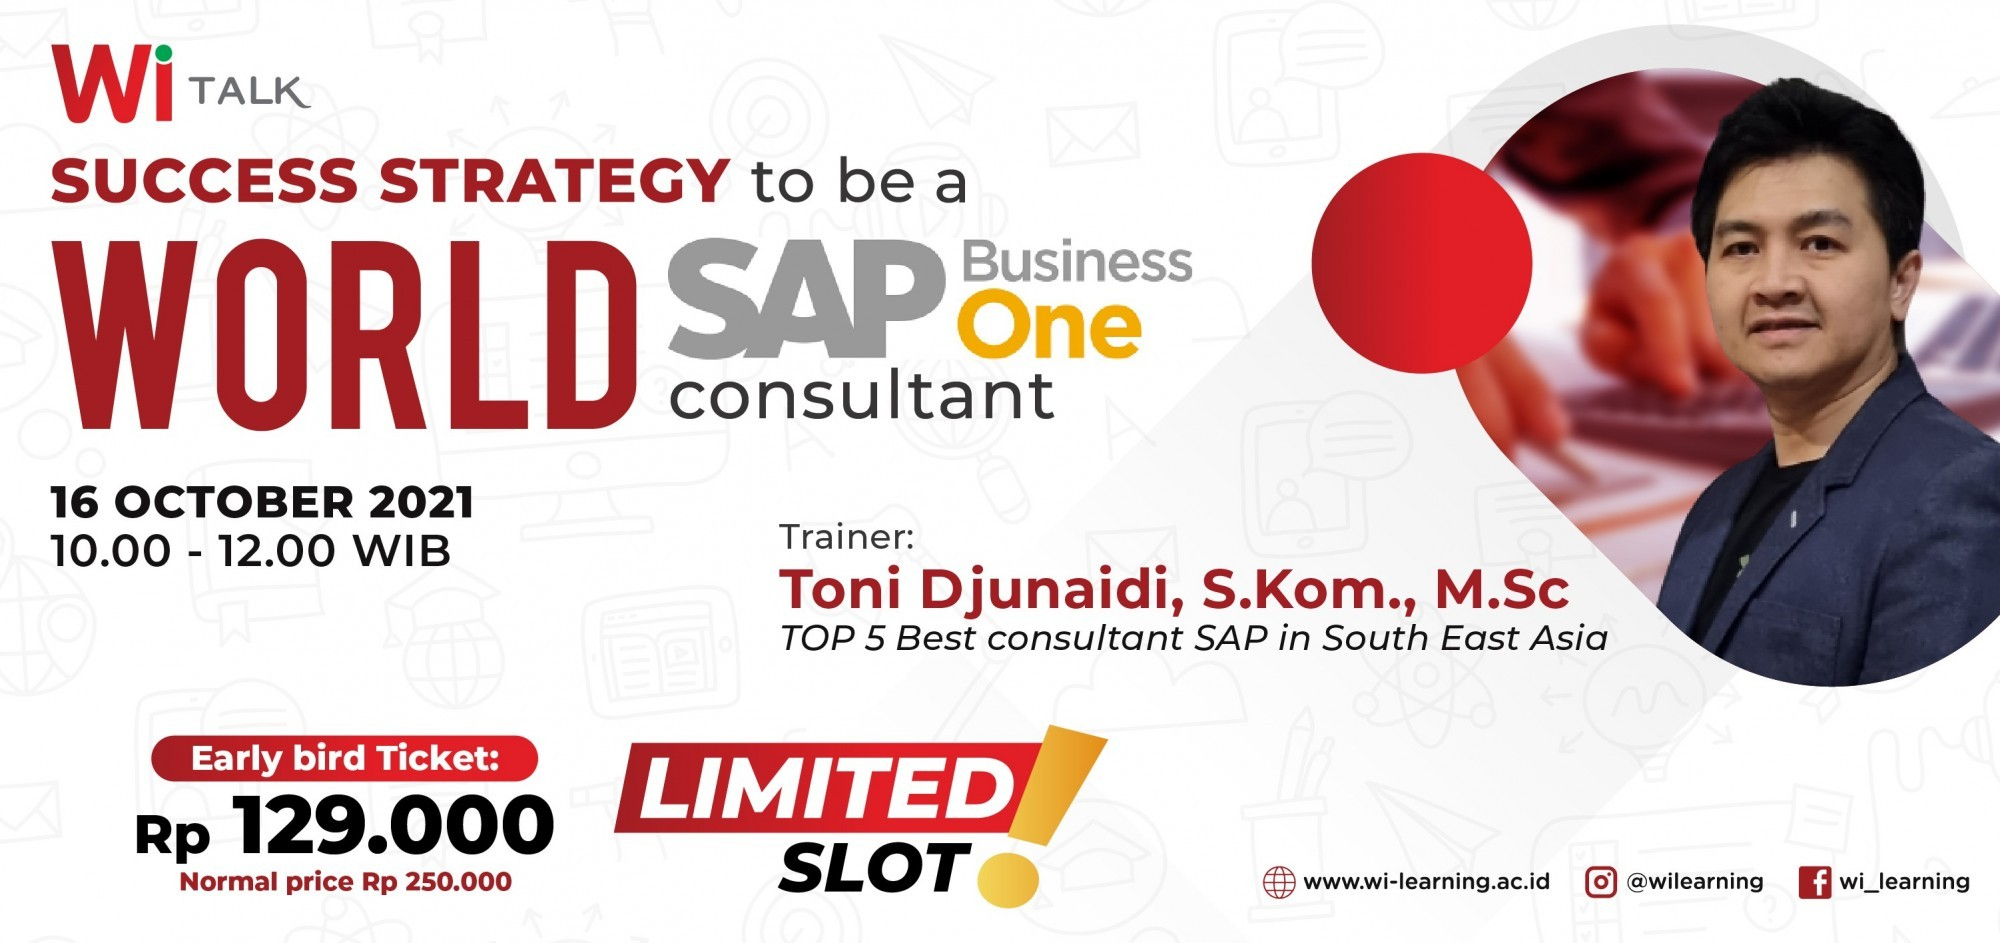 Wi Talk : Success Strategy to be a World SAP Business One Consultant